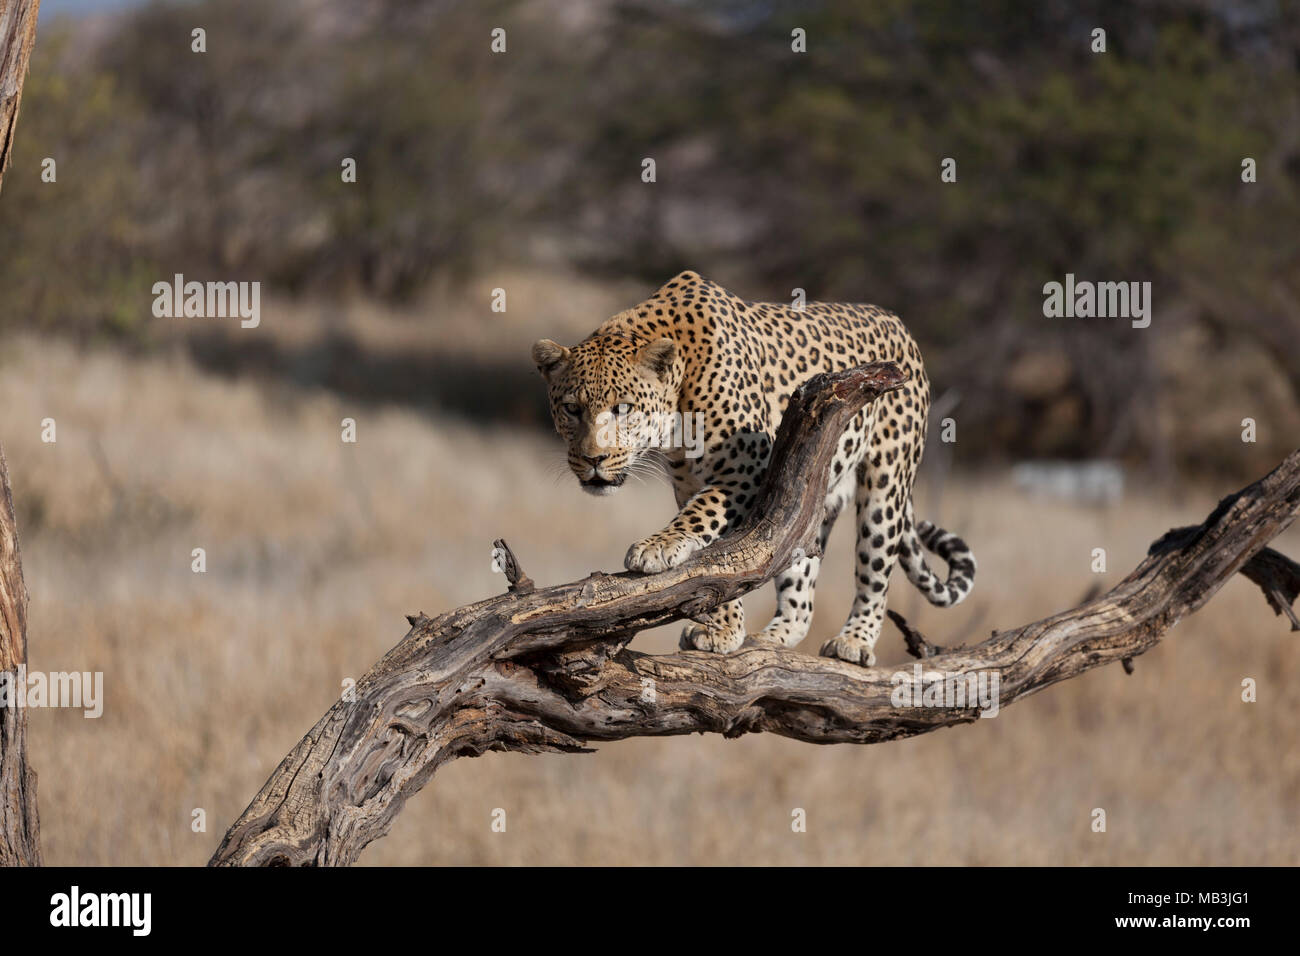 Leopard in Namibia Stock Photo